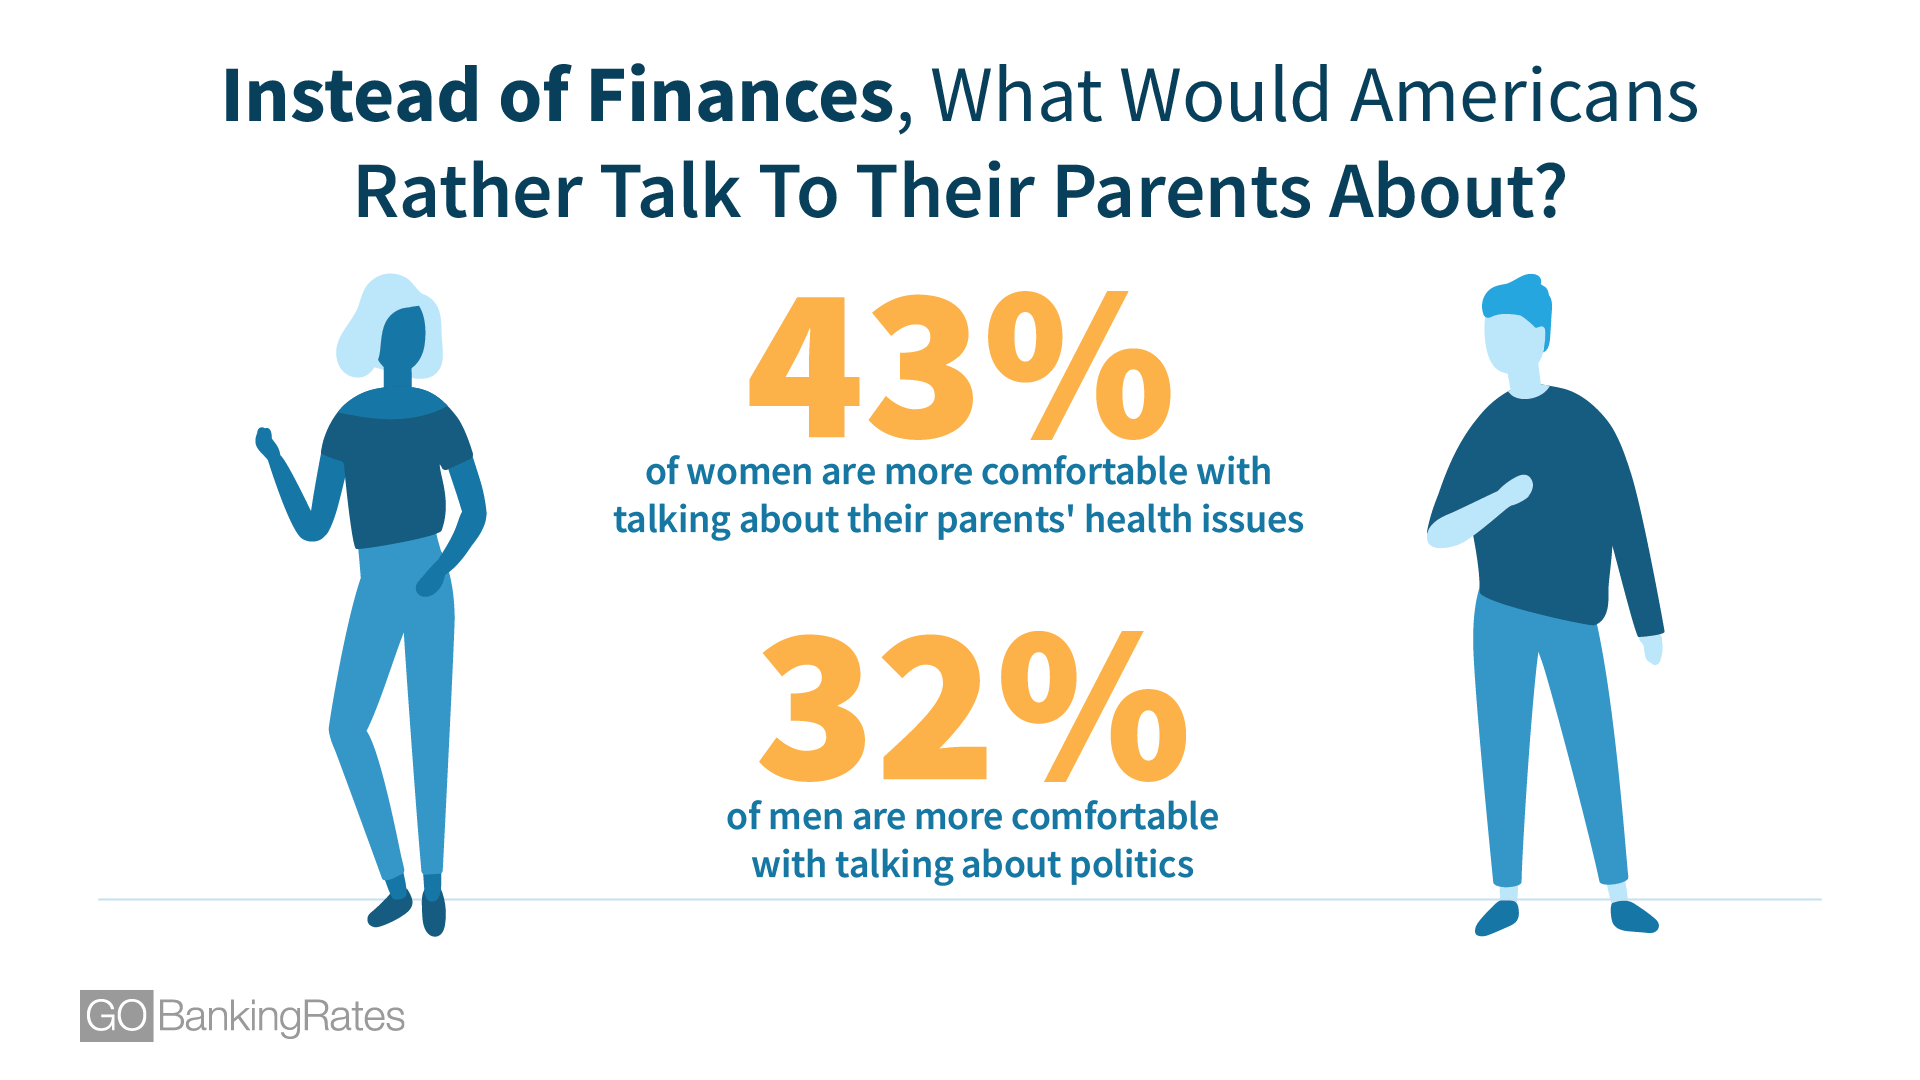 Instead of Finances, What Would Americans Rather Talk To Their Parents About?